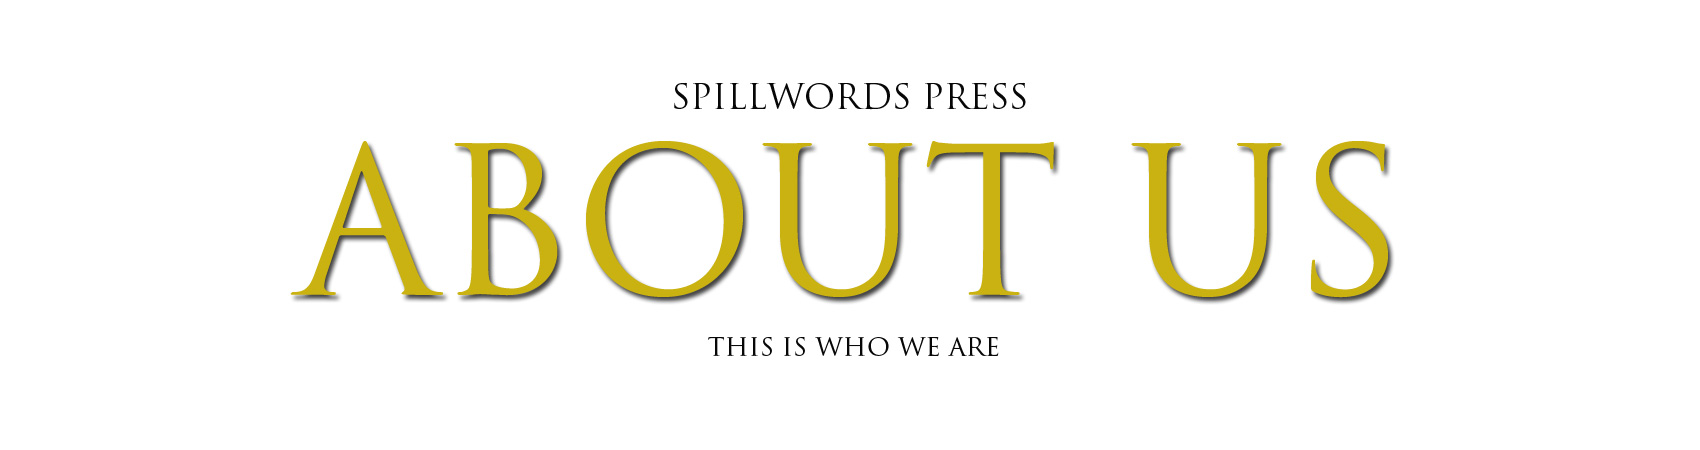 About Us at Spillwords.com